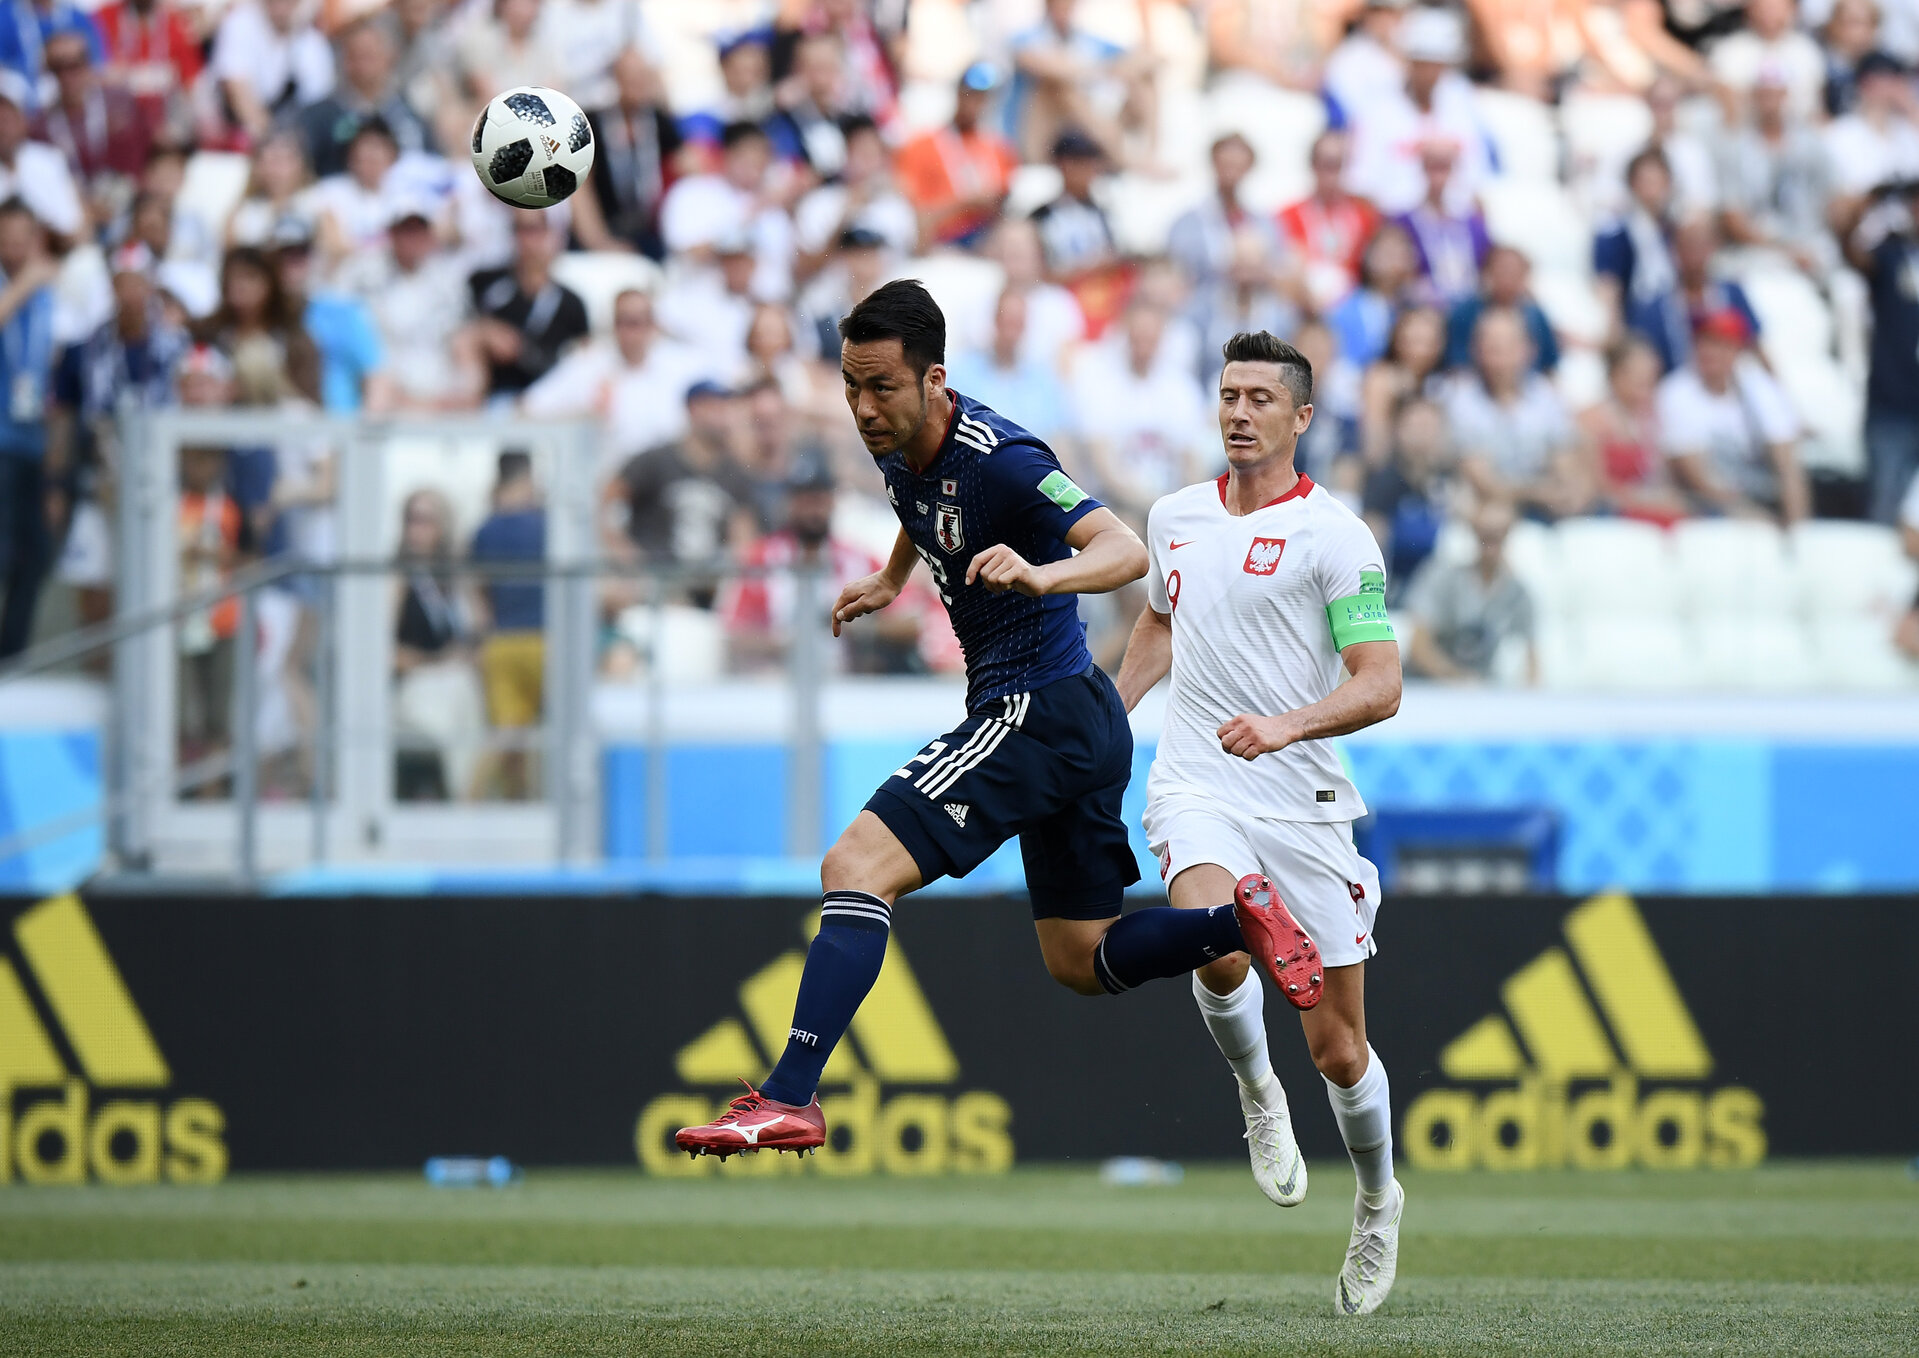 VOLGOGRAD, RUSSIA - JUNE 28:  Naomichi Ueda of Japan heads the ball to Eiji Kawashima (not pictured) during the 2018 FIFA World Cup Russia group H match between Japan and Poland at Volgograd Arena on June 28, 2018 in Volgograd, Russia.  (Photo by Carl Court/Getty Images)